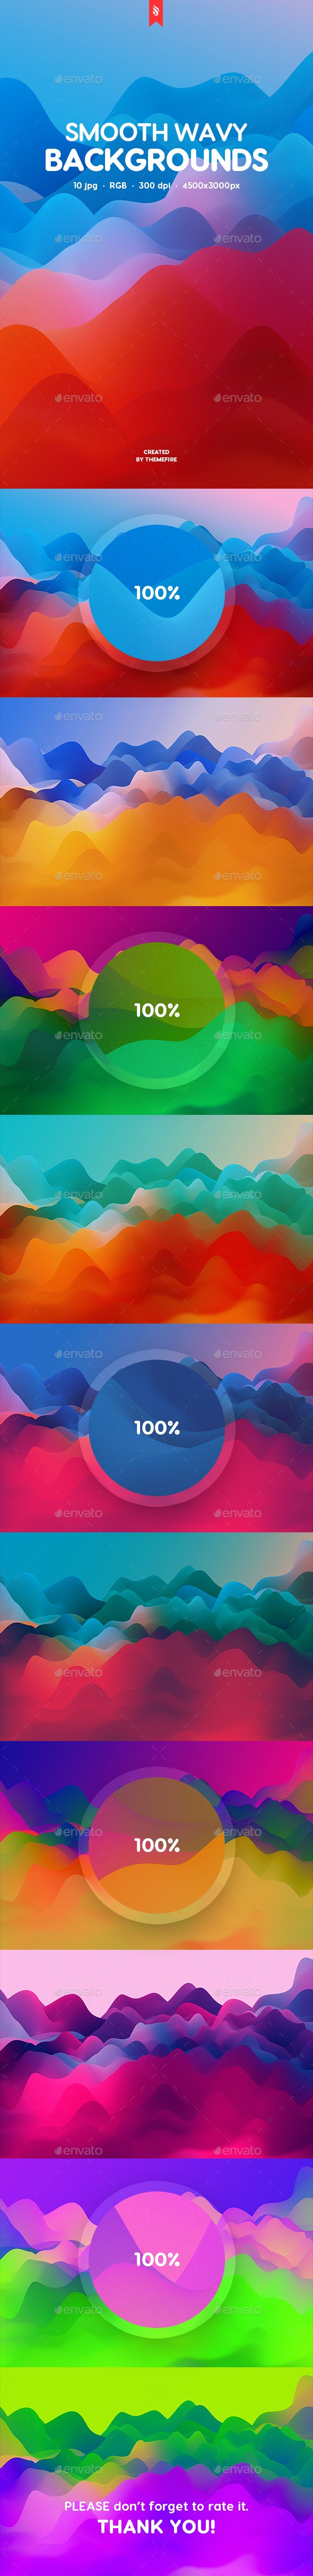 Colorful Smooth Wavy Backgrounds - Abstract Backgrounds